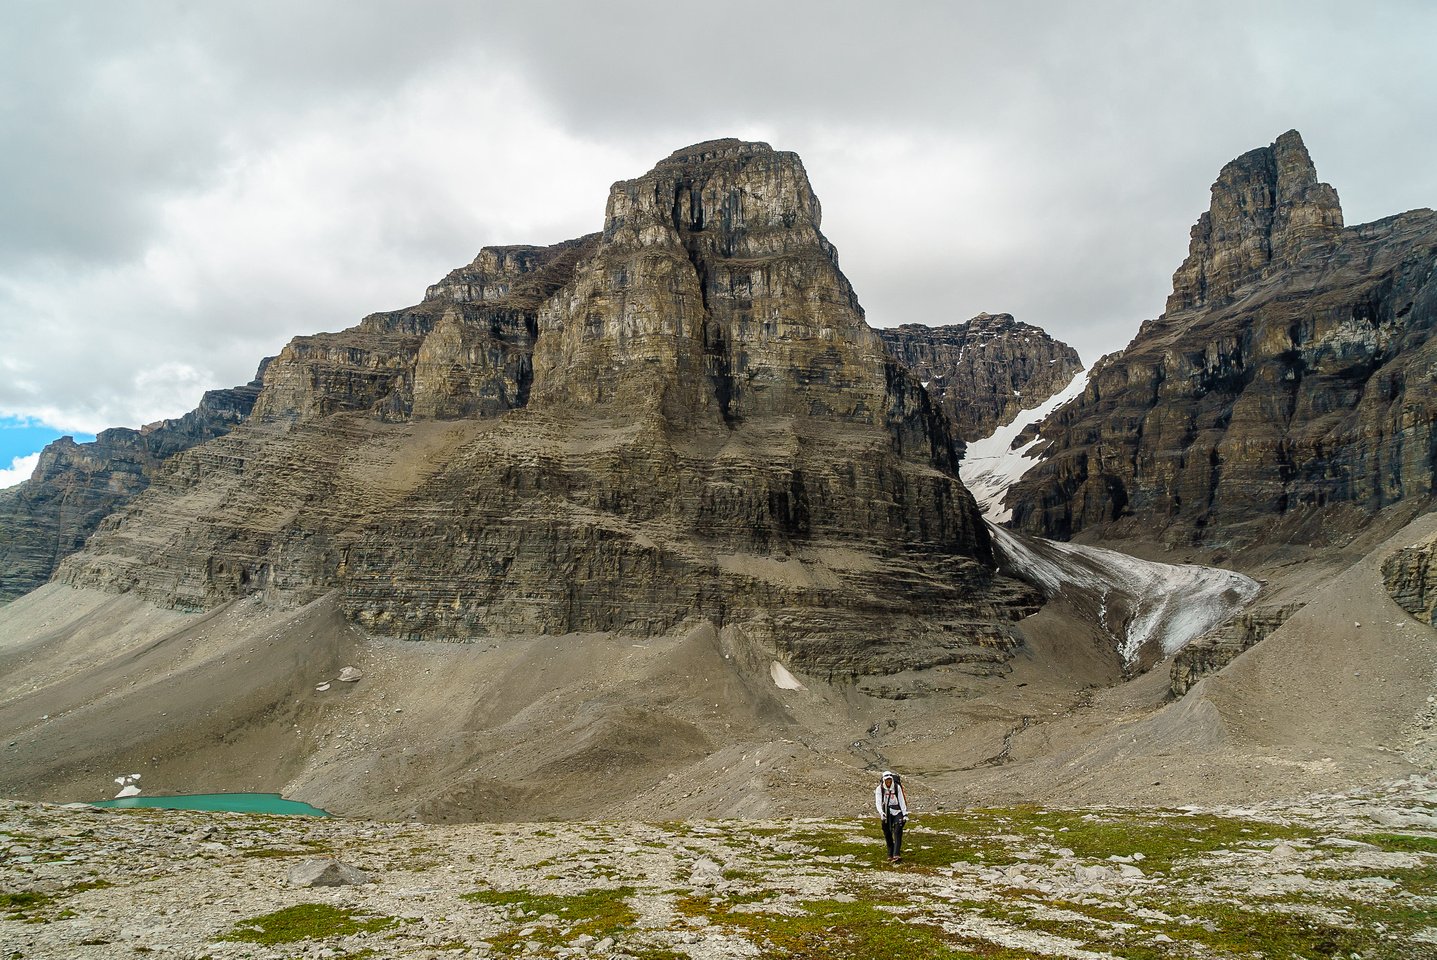 Steven crests the col with Hall Tower and it's glacier on the right and Englehard Tower in behind. East Tower in the foreground.